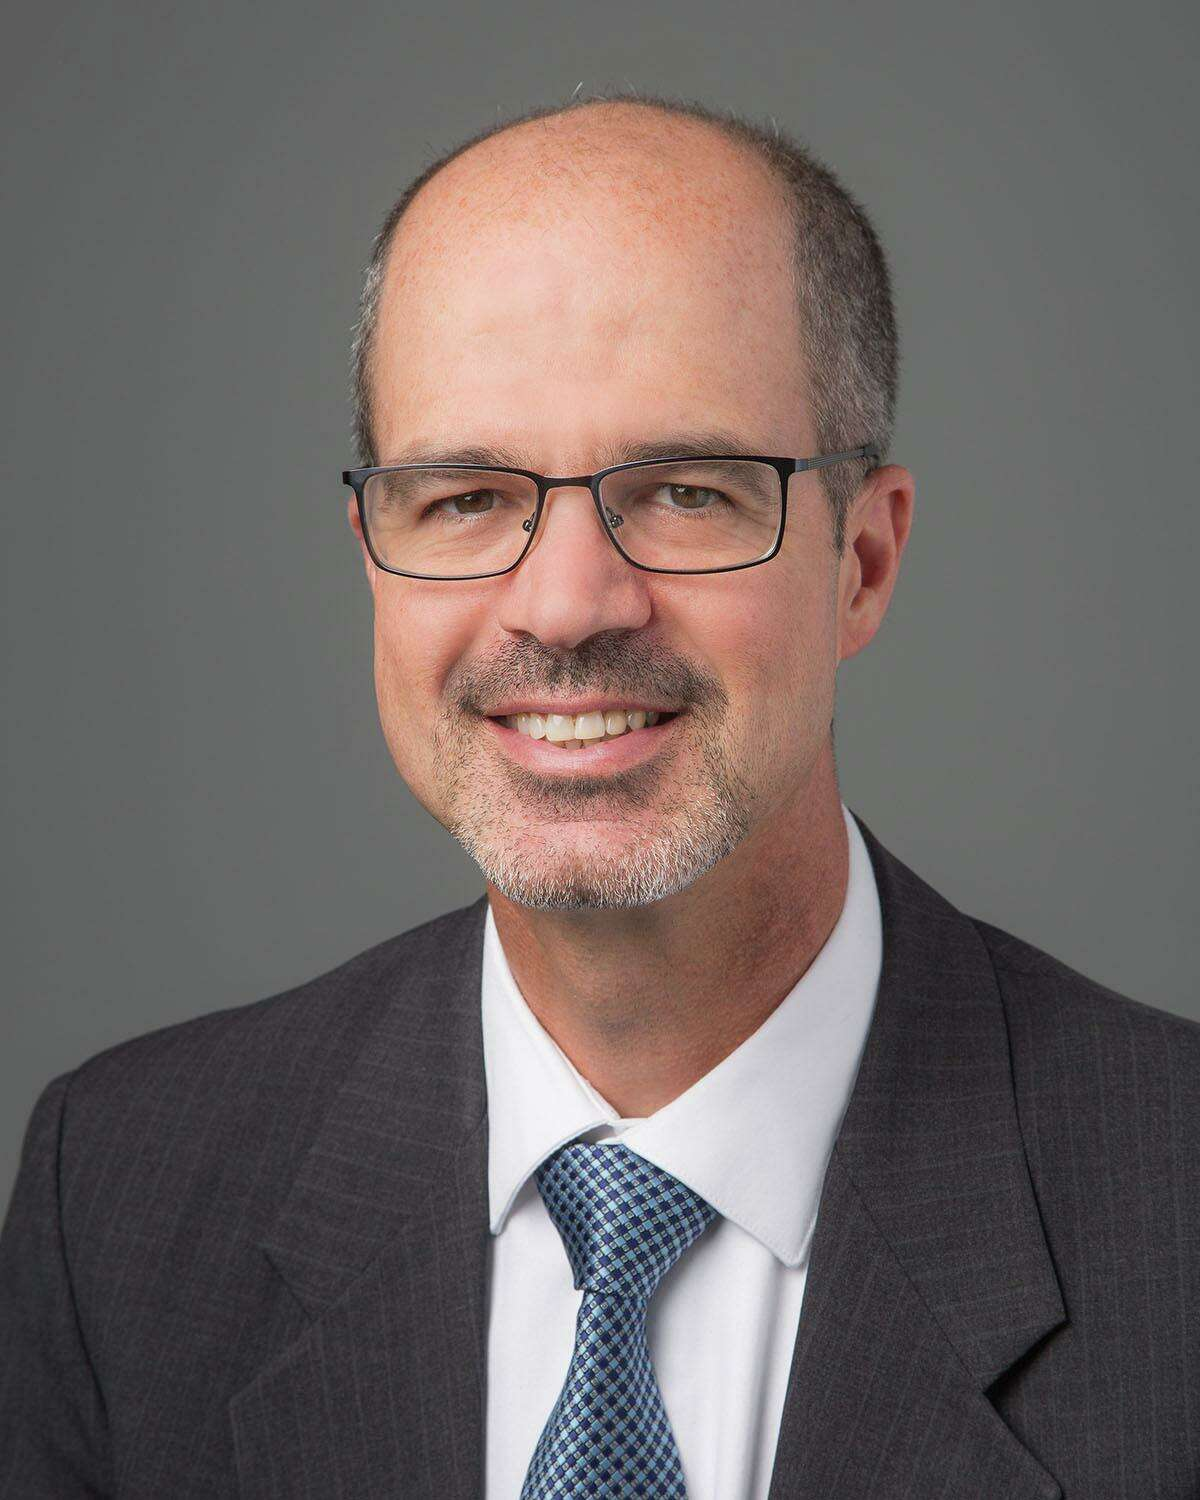 Marc Williams was named executive director of the Texas Department of Transportation on May 26, 2021.